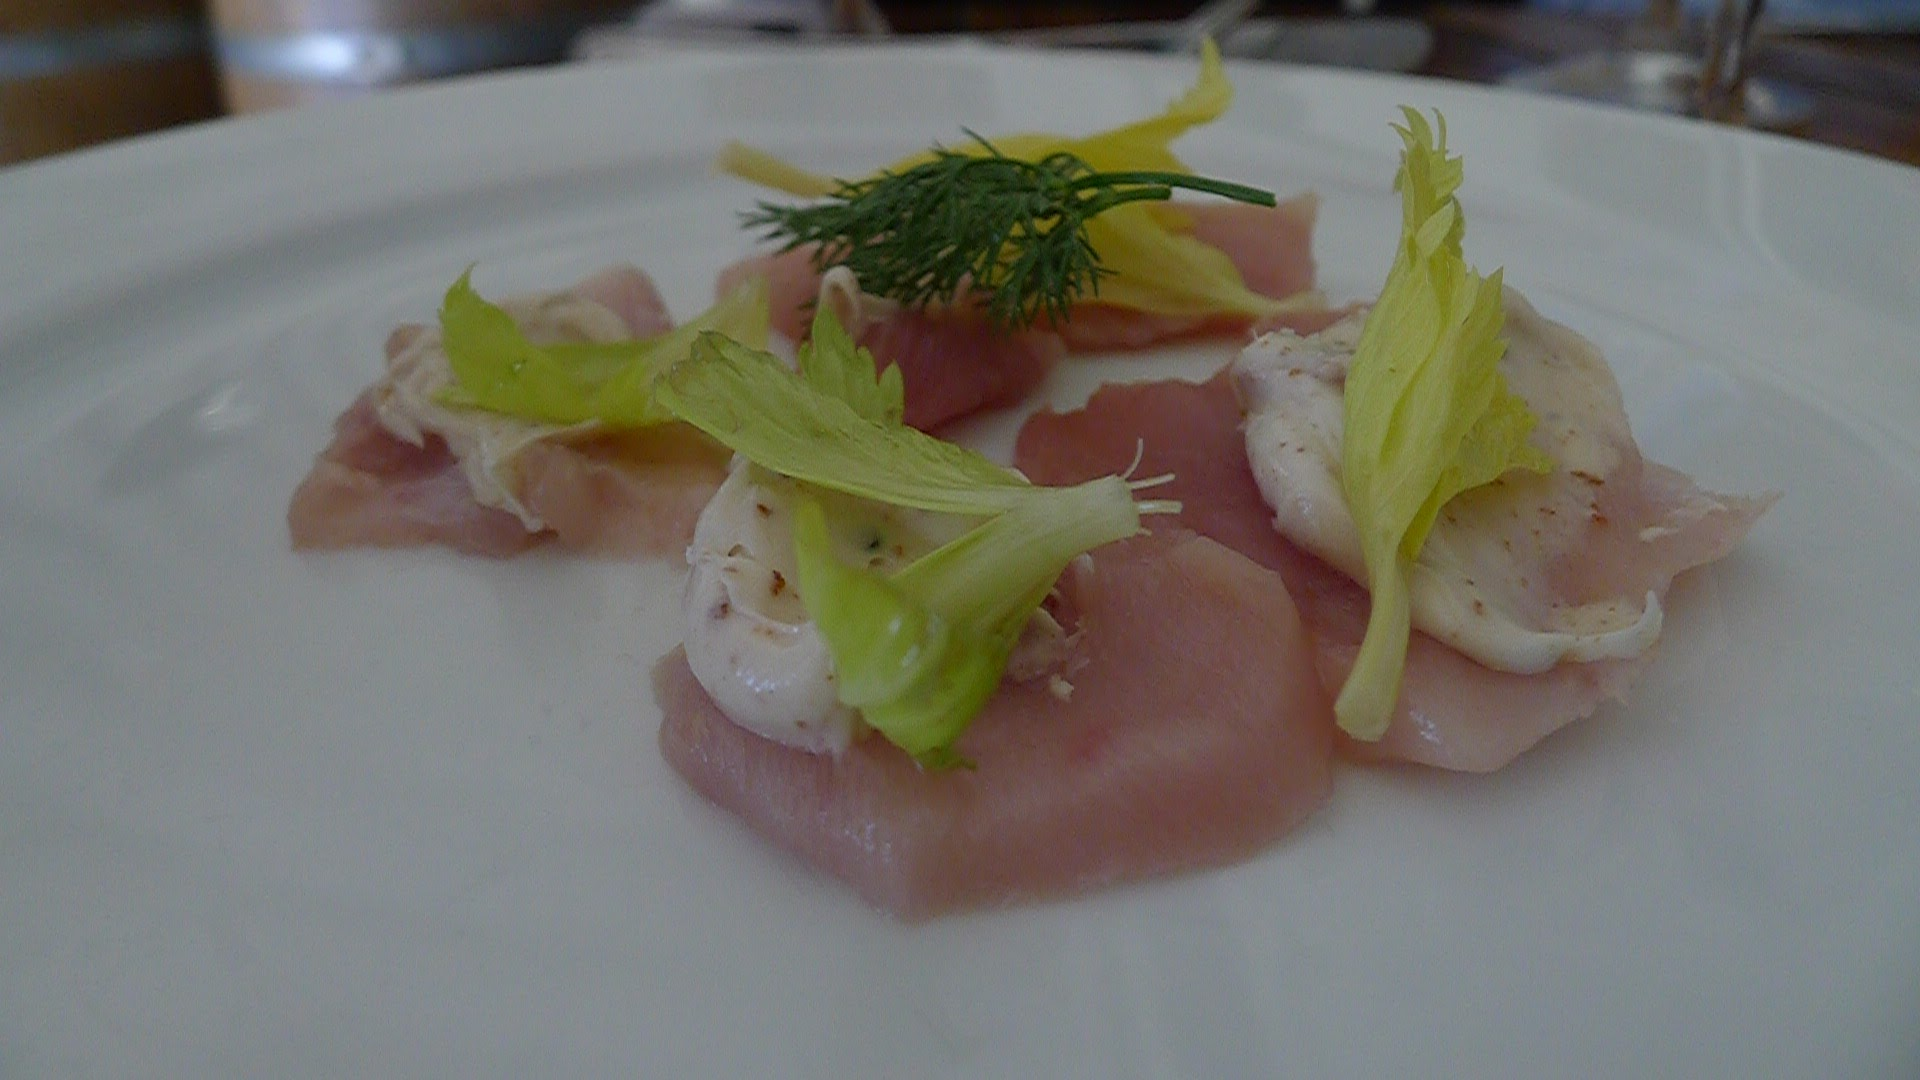 B.C. Albacore Tuna with Whipped Bacon Fat and Celery Foliage.